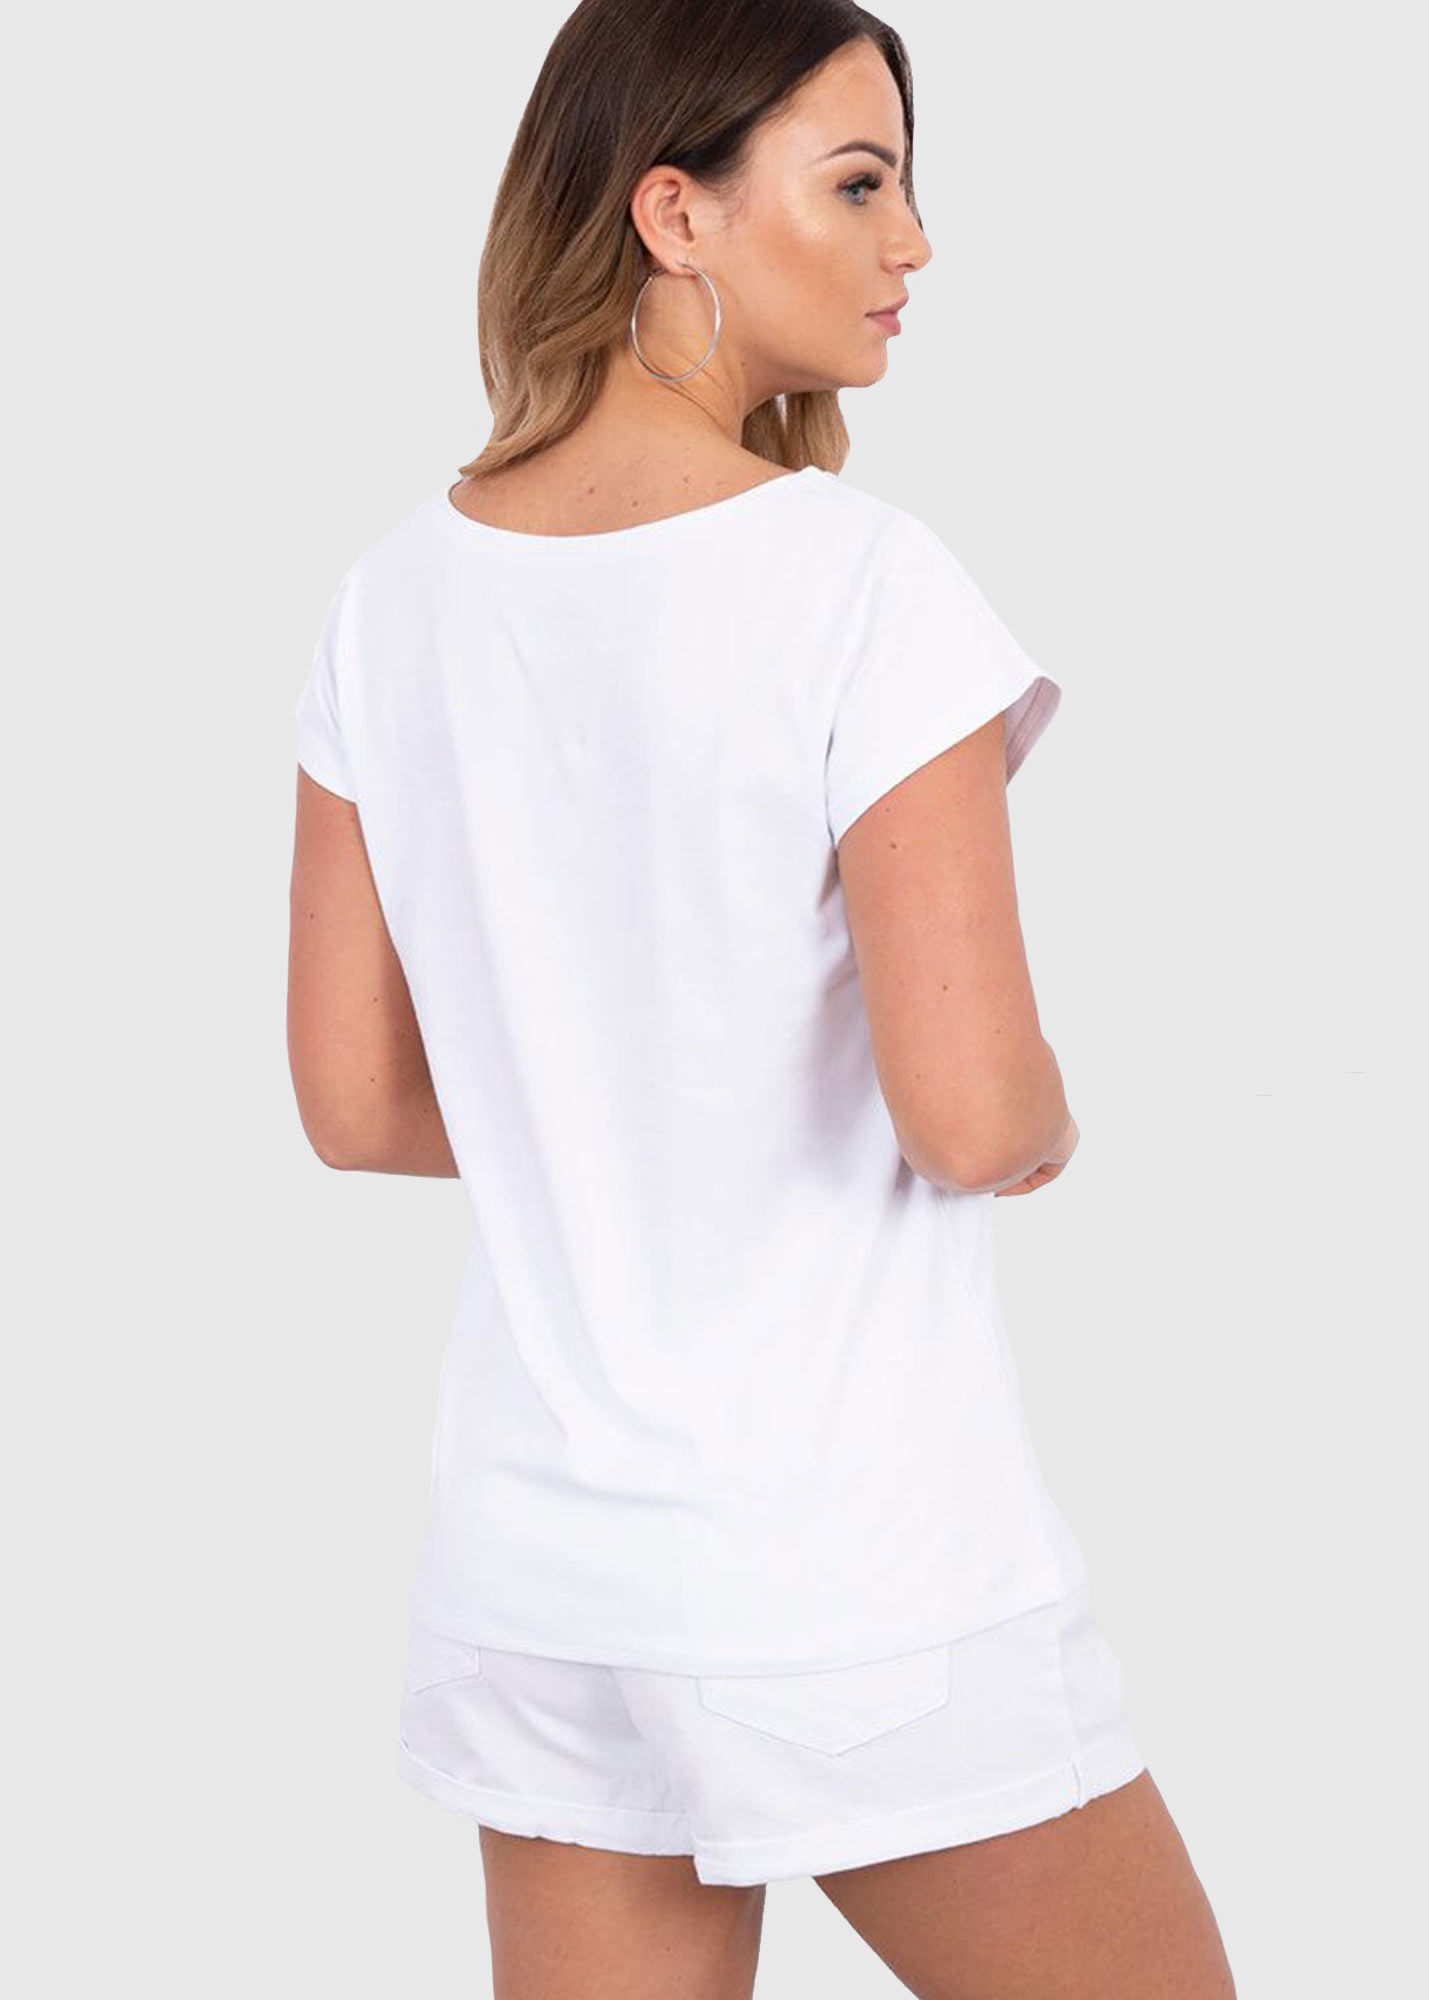 Photo №1 Sardinia white t-shirt with print